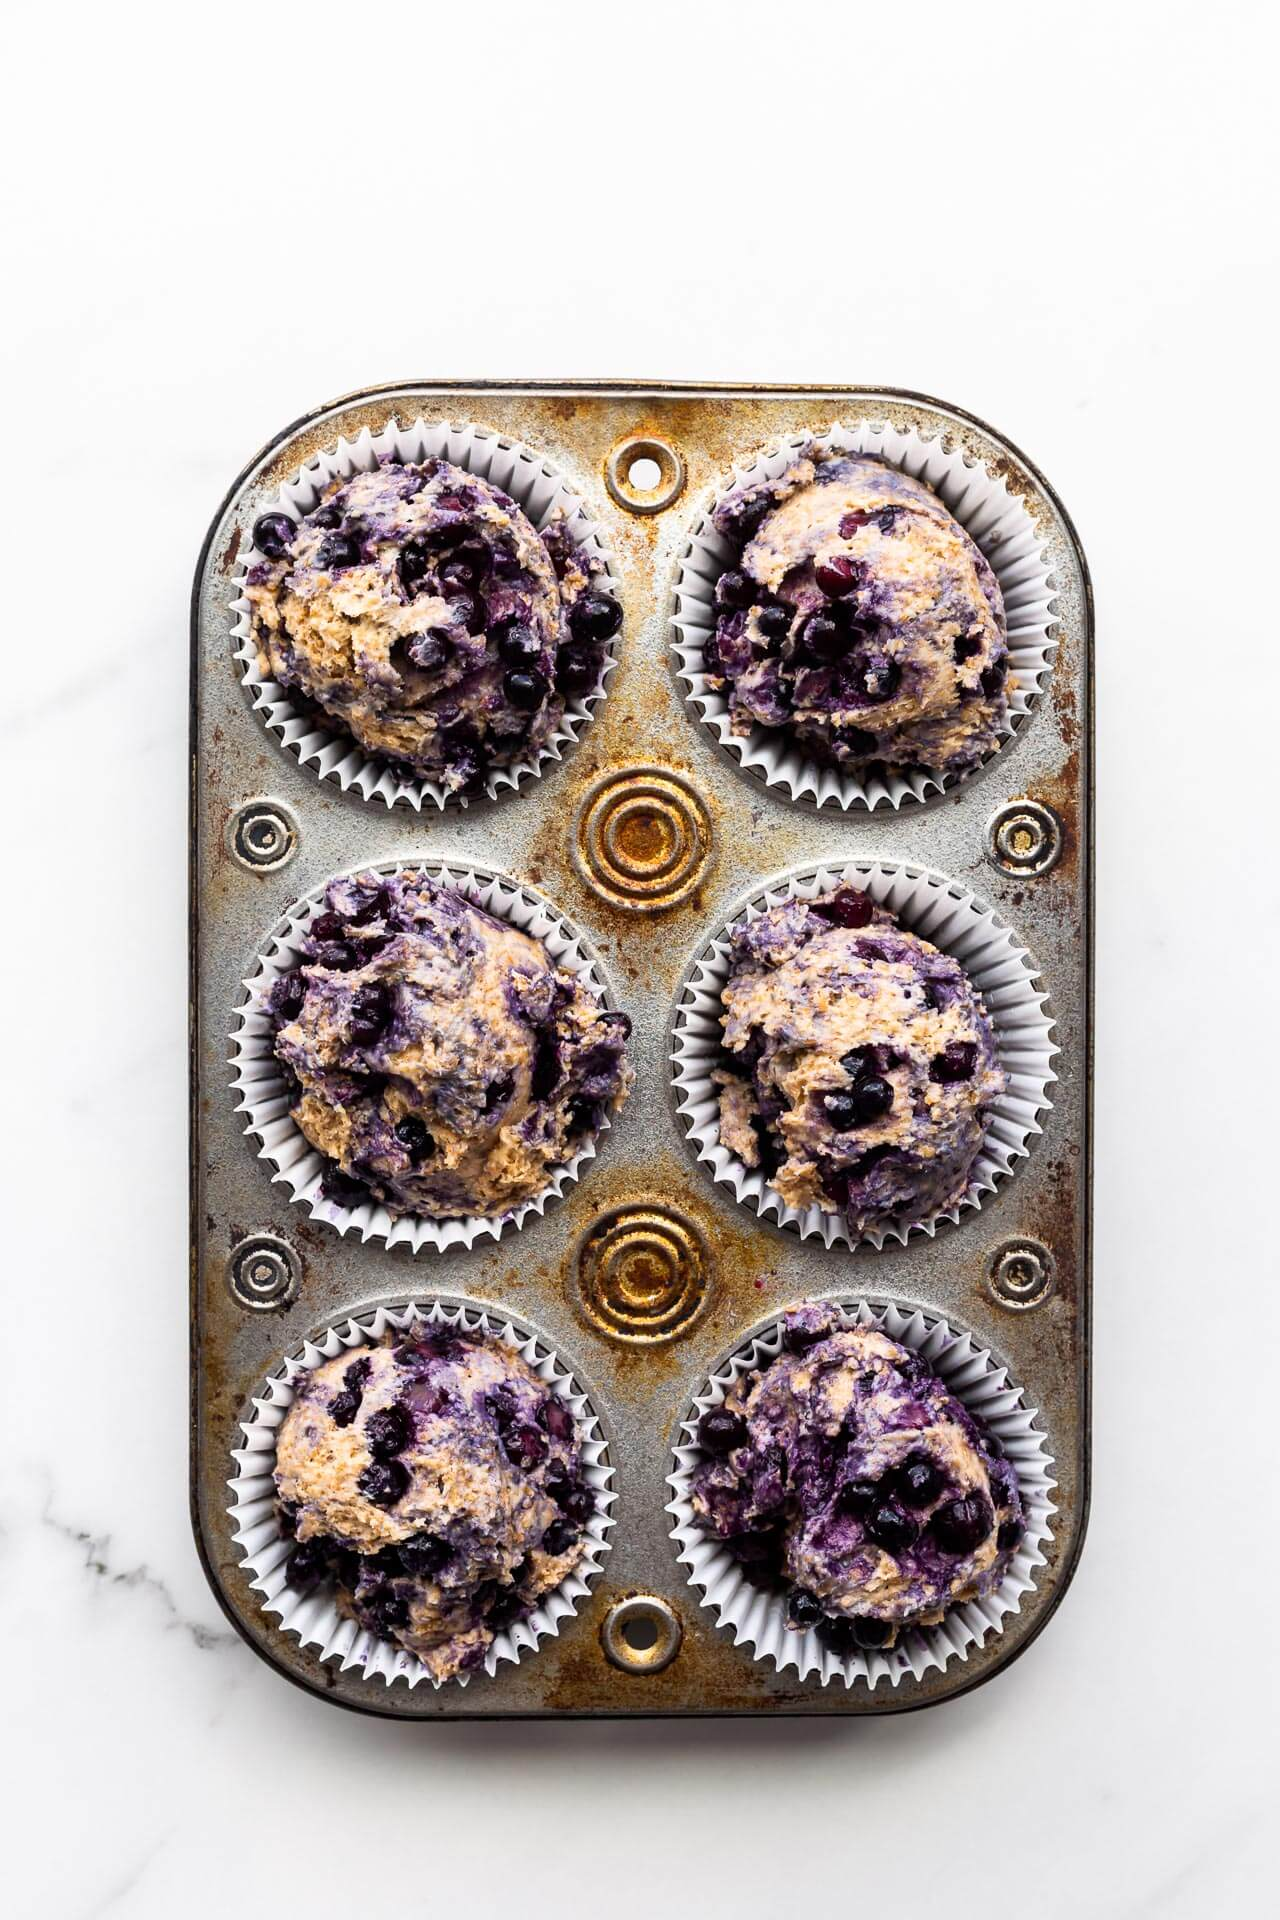 Blueberry bran muffins divided between paper liners in a vintage muffin pan